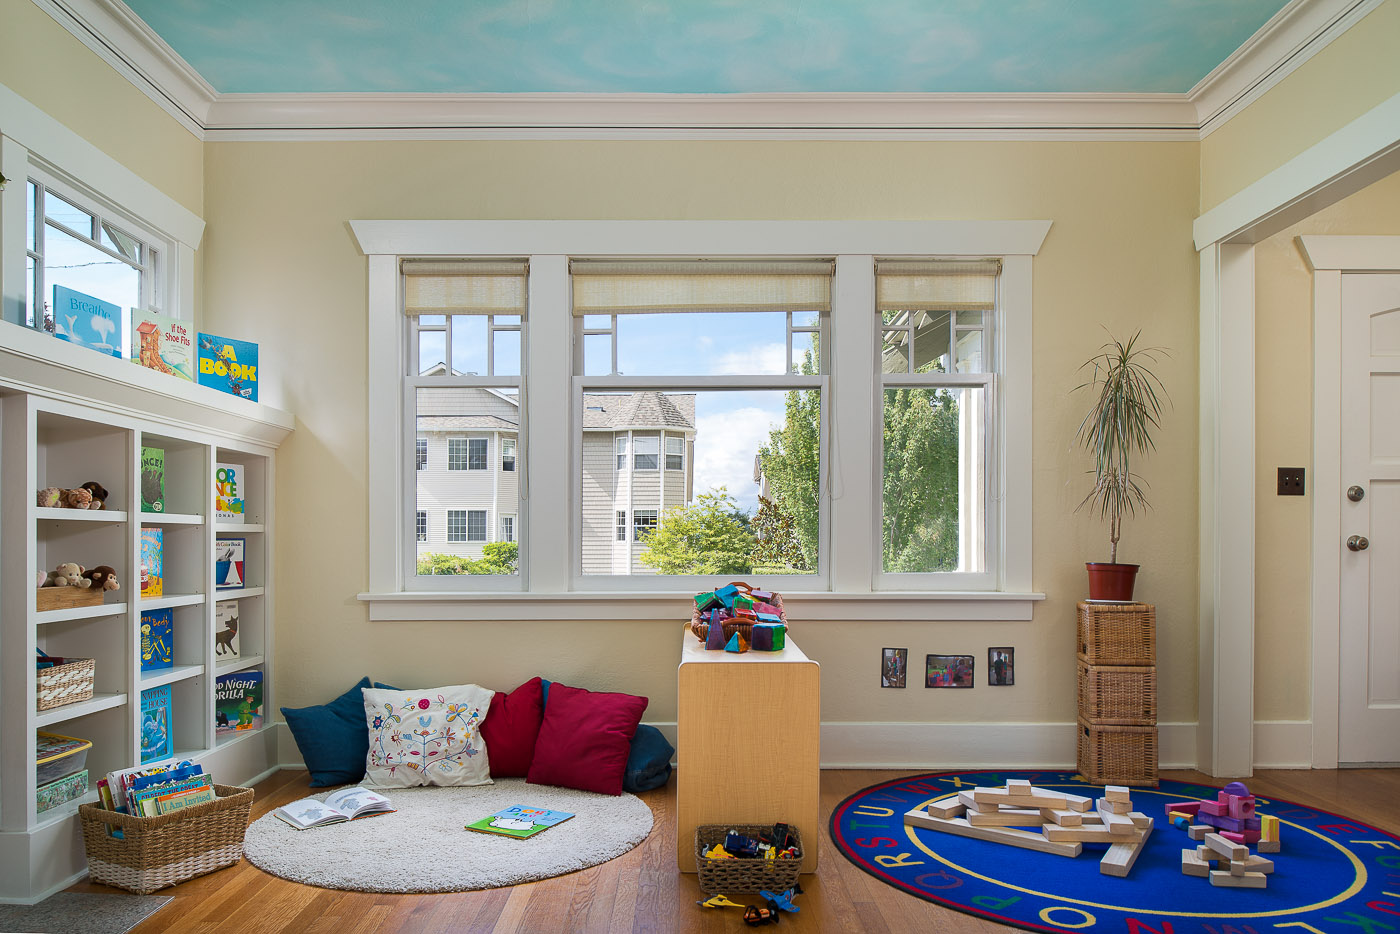 Sitting area for preschool kids with toys and wooden blocks